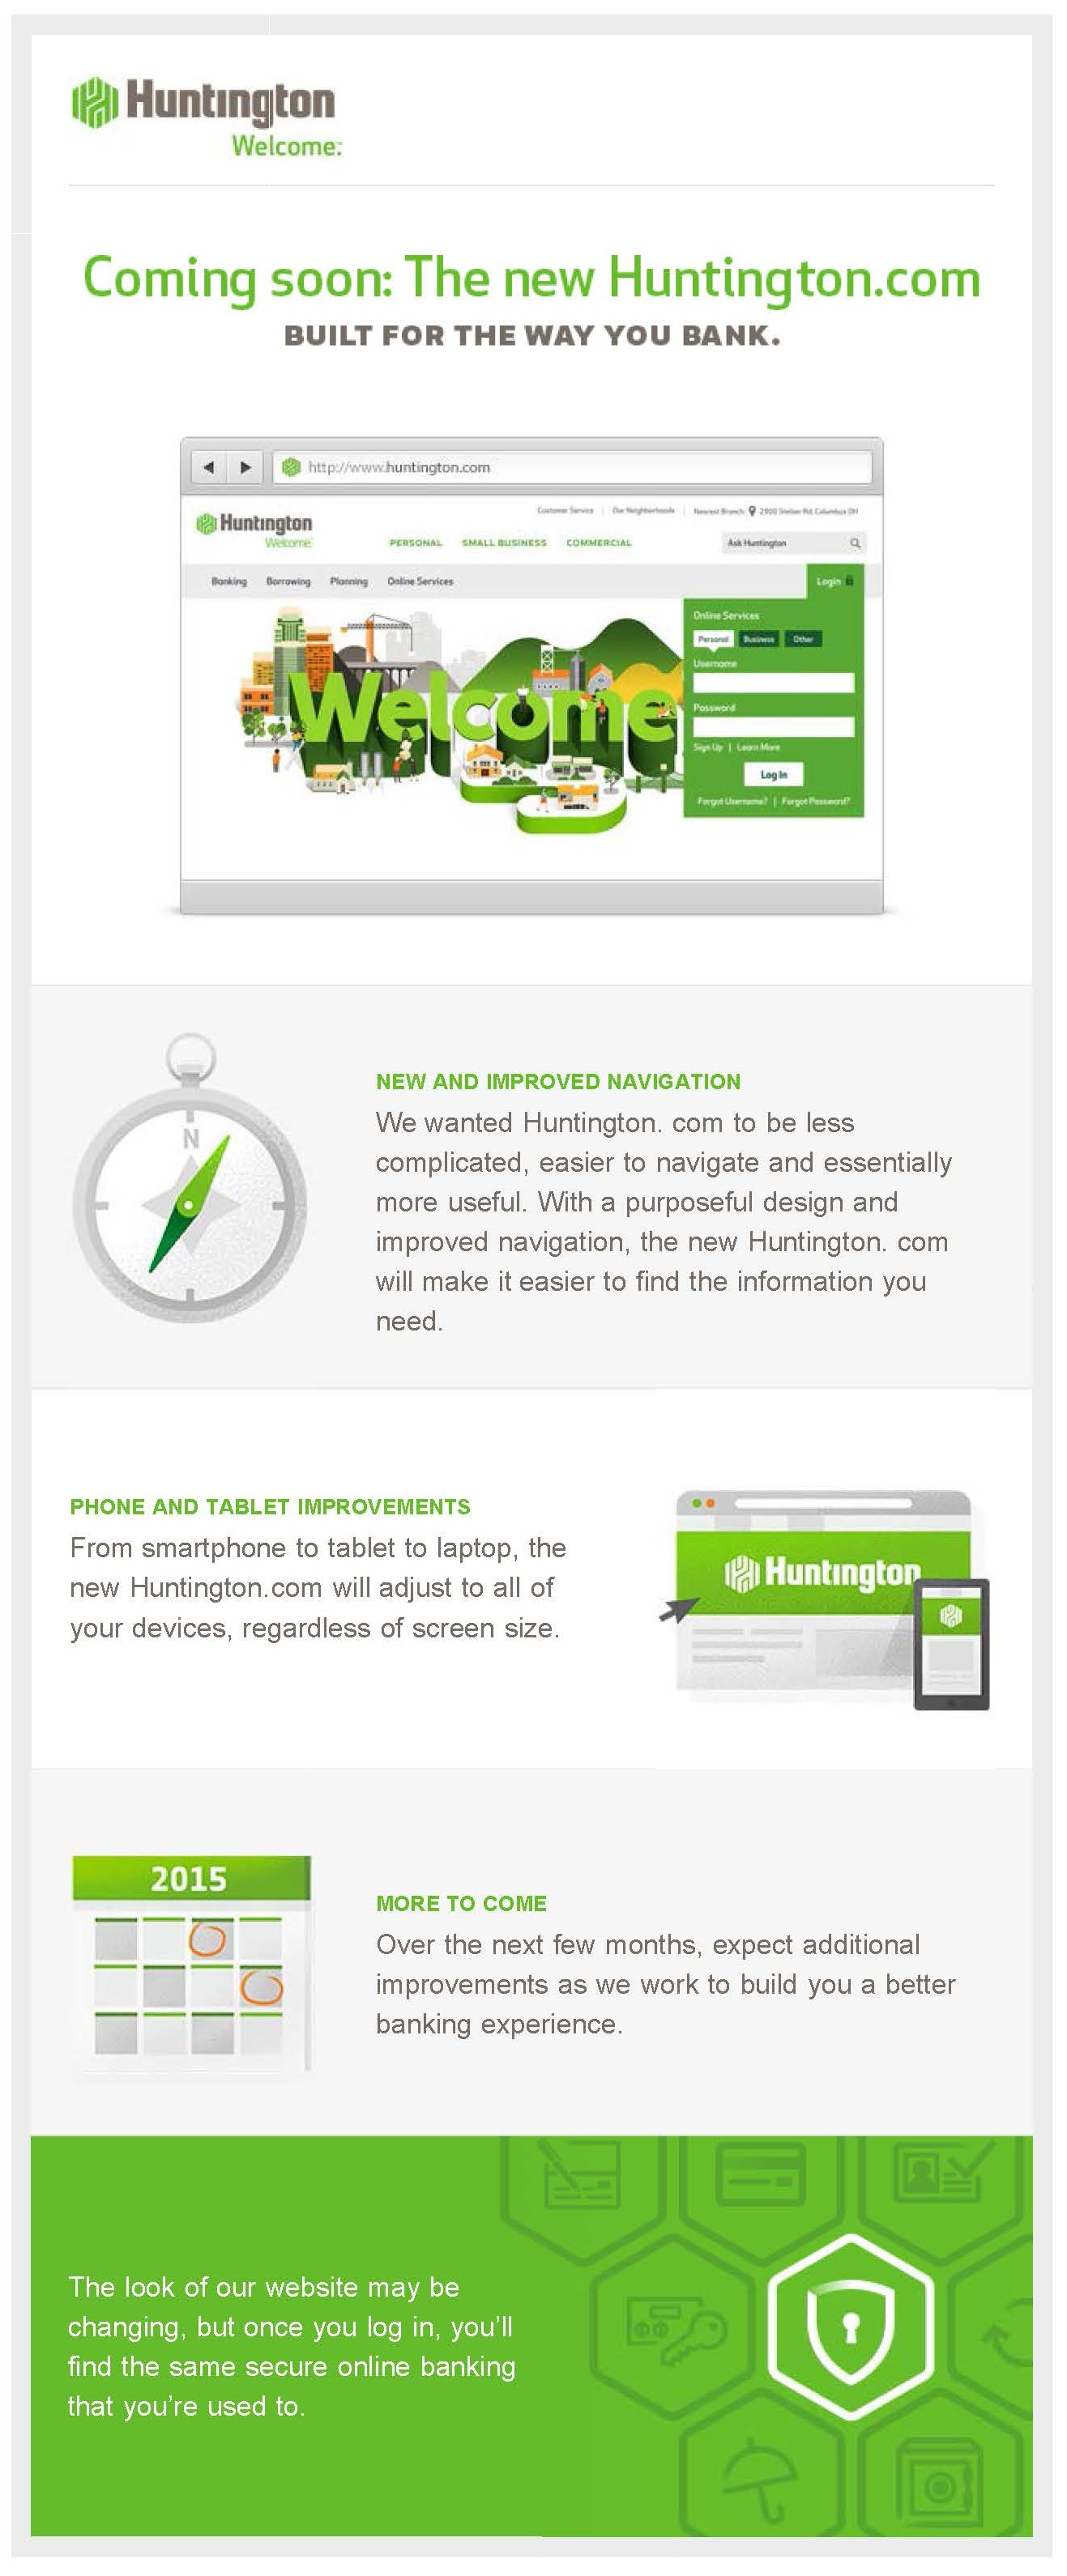 Huntington Bank customer email describing new web experience